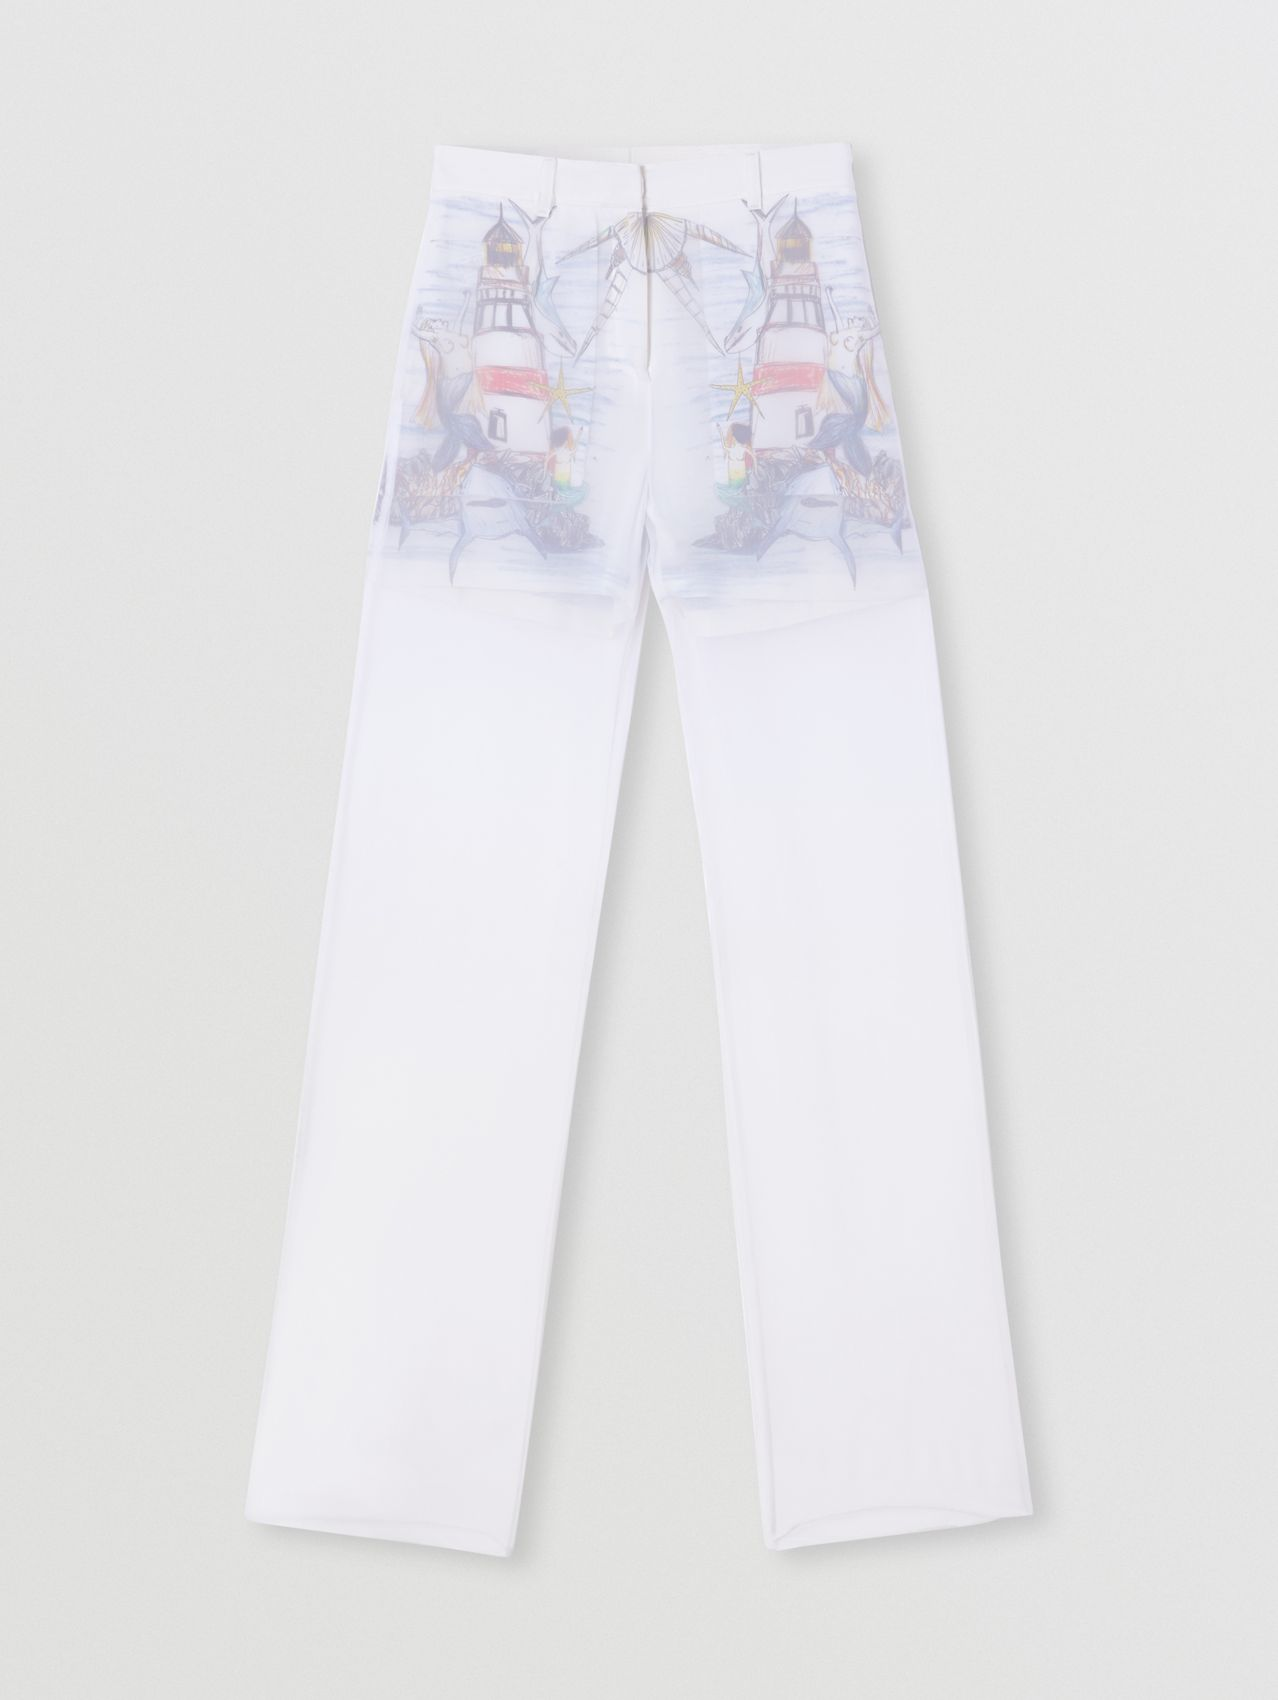 Chiffon Overlay Marine Sketch Print Silk Shorts in Optic White